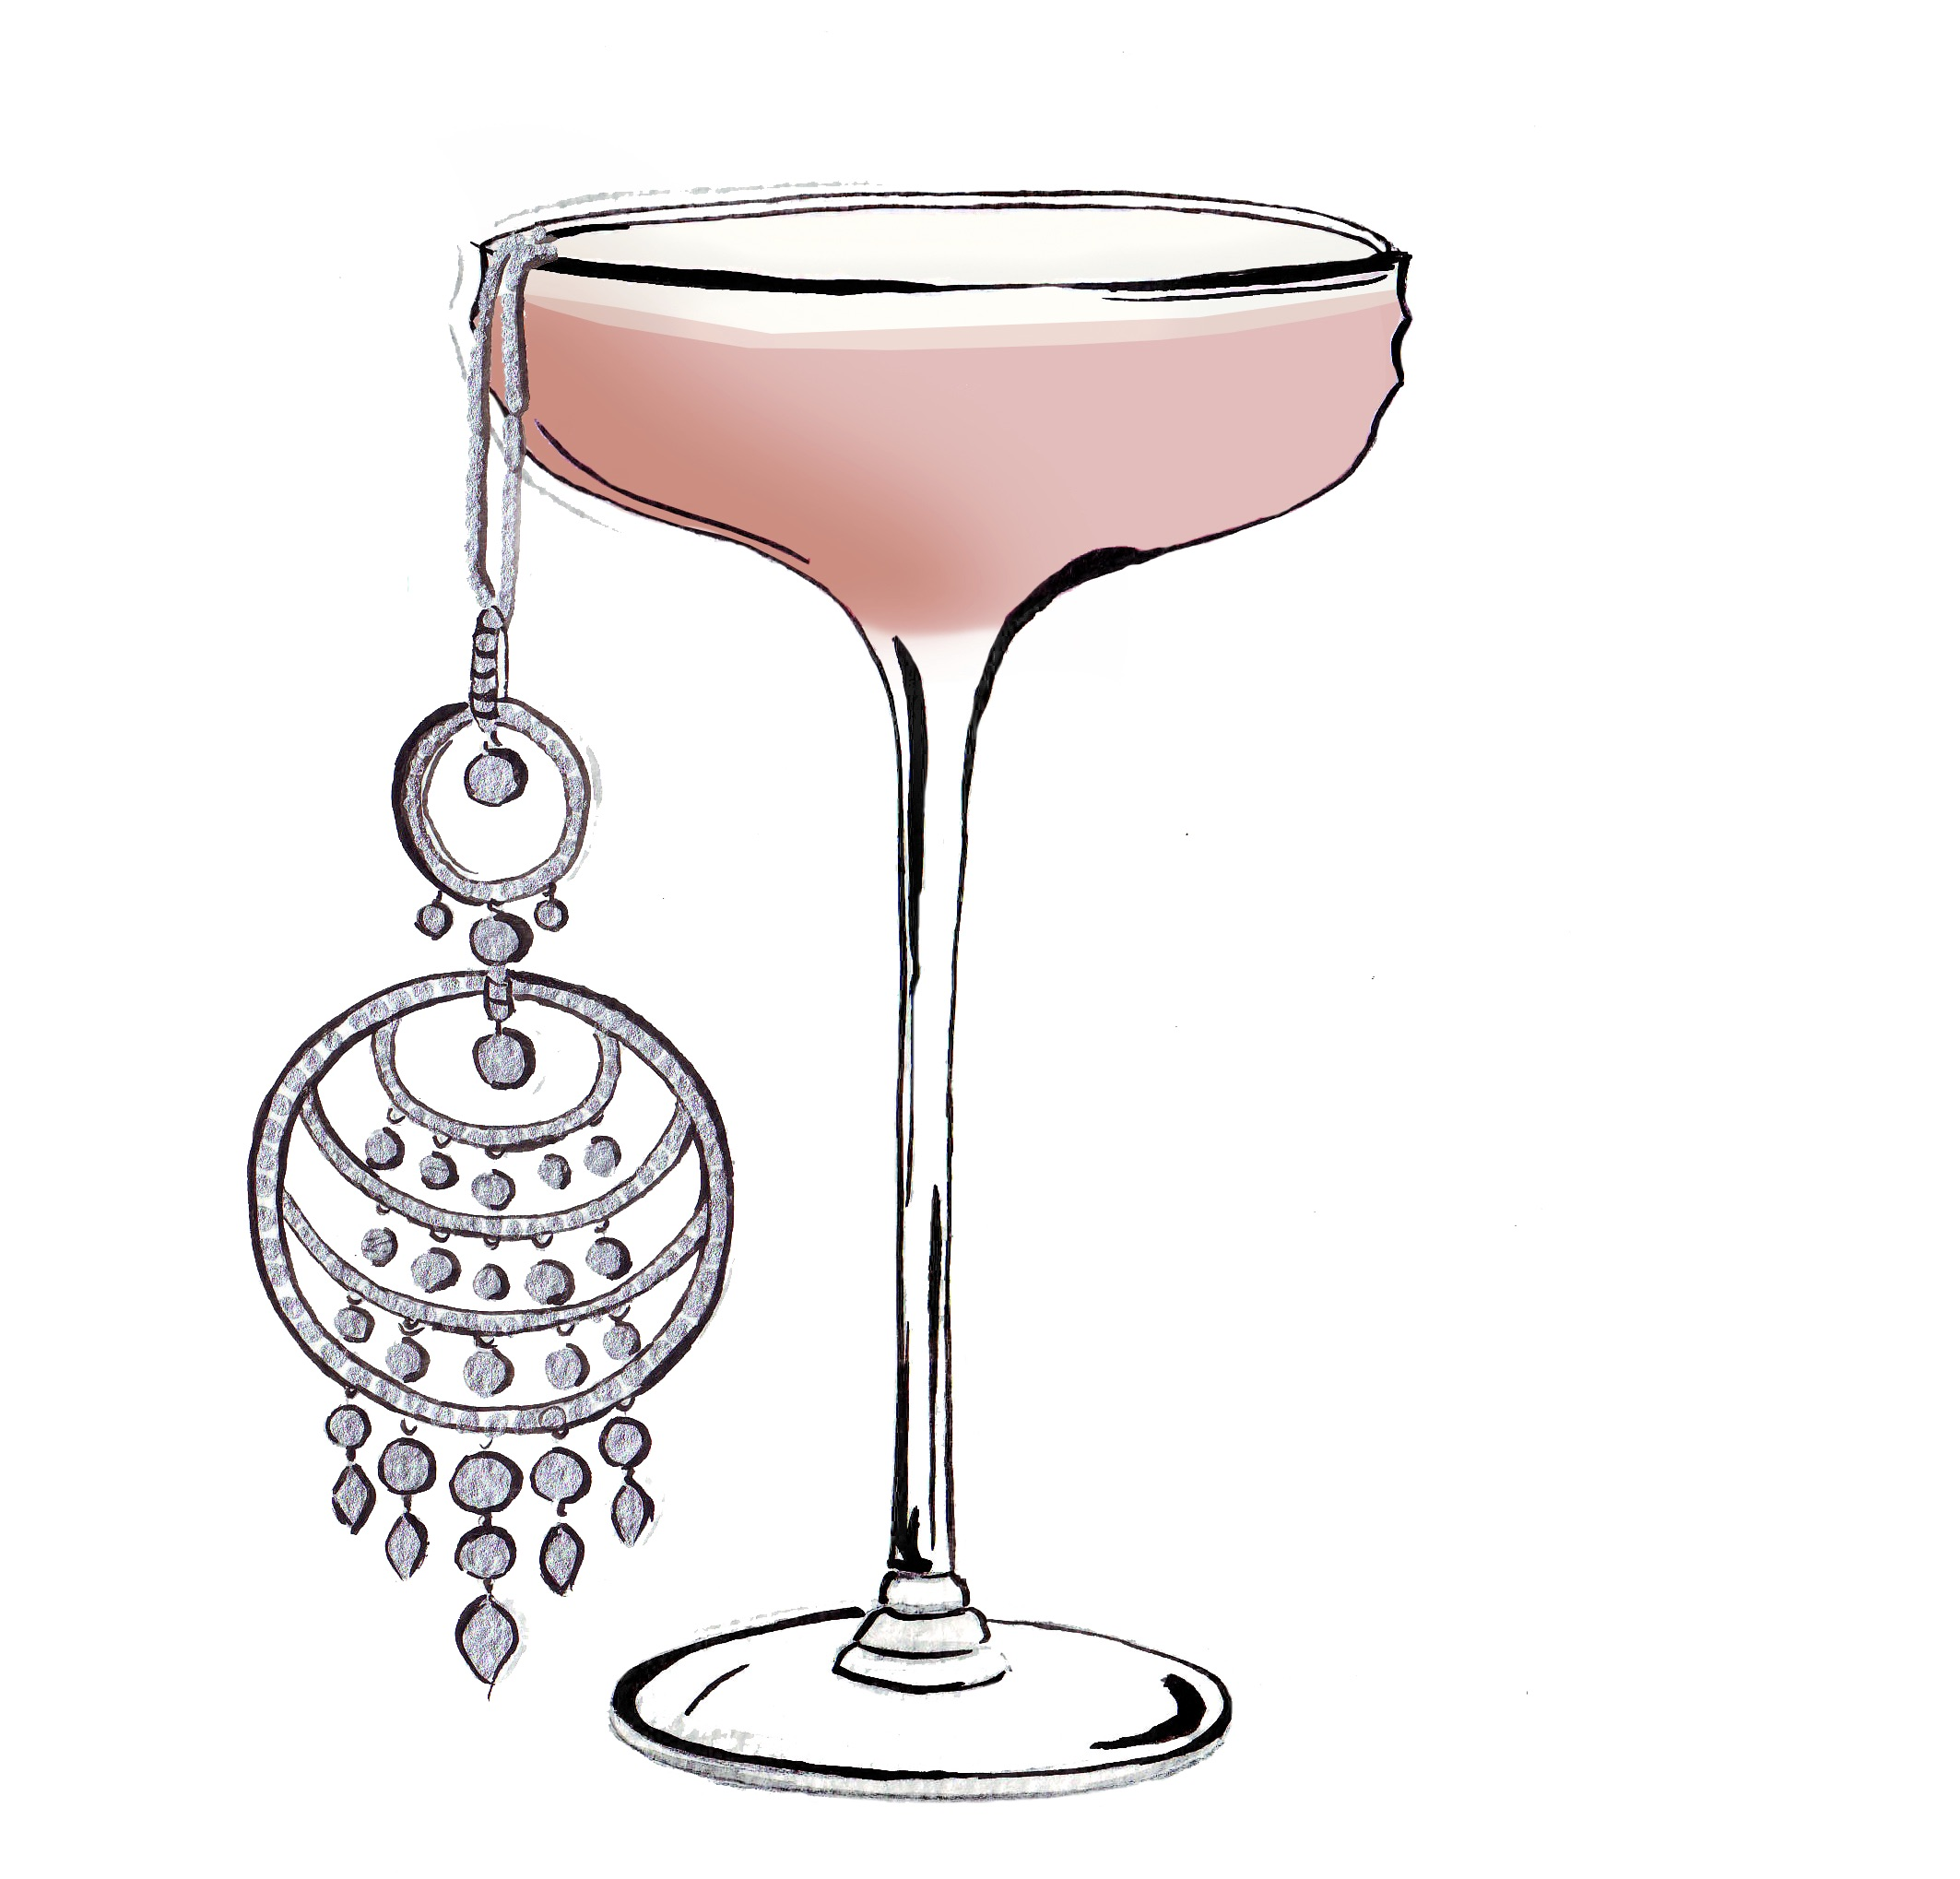 Cocktail glass and earing copy.jpg